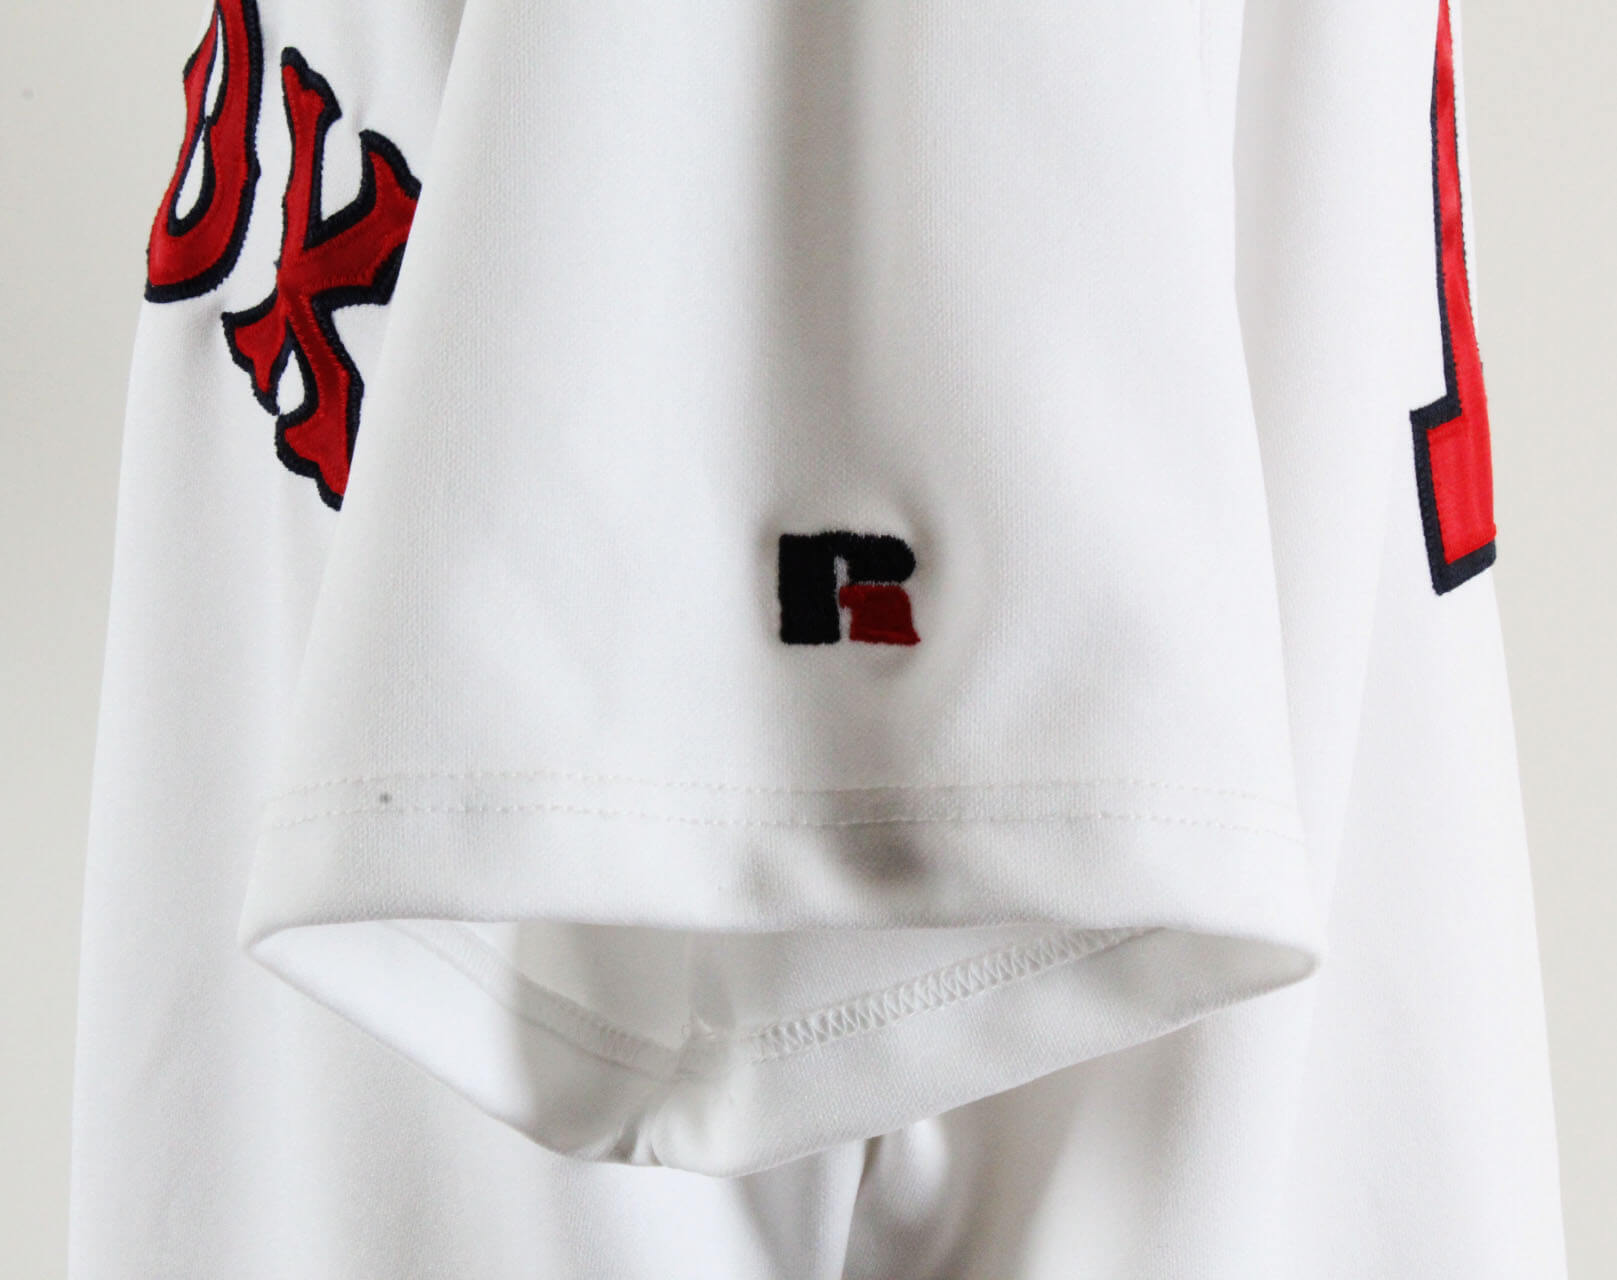 01a4587ad41 2004 Boston Red Sox – Johnny Damon Game-Worn Home Jersey – COA ...